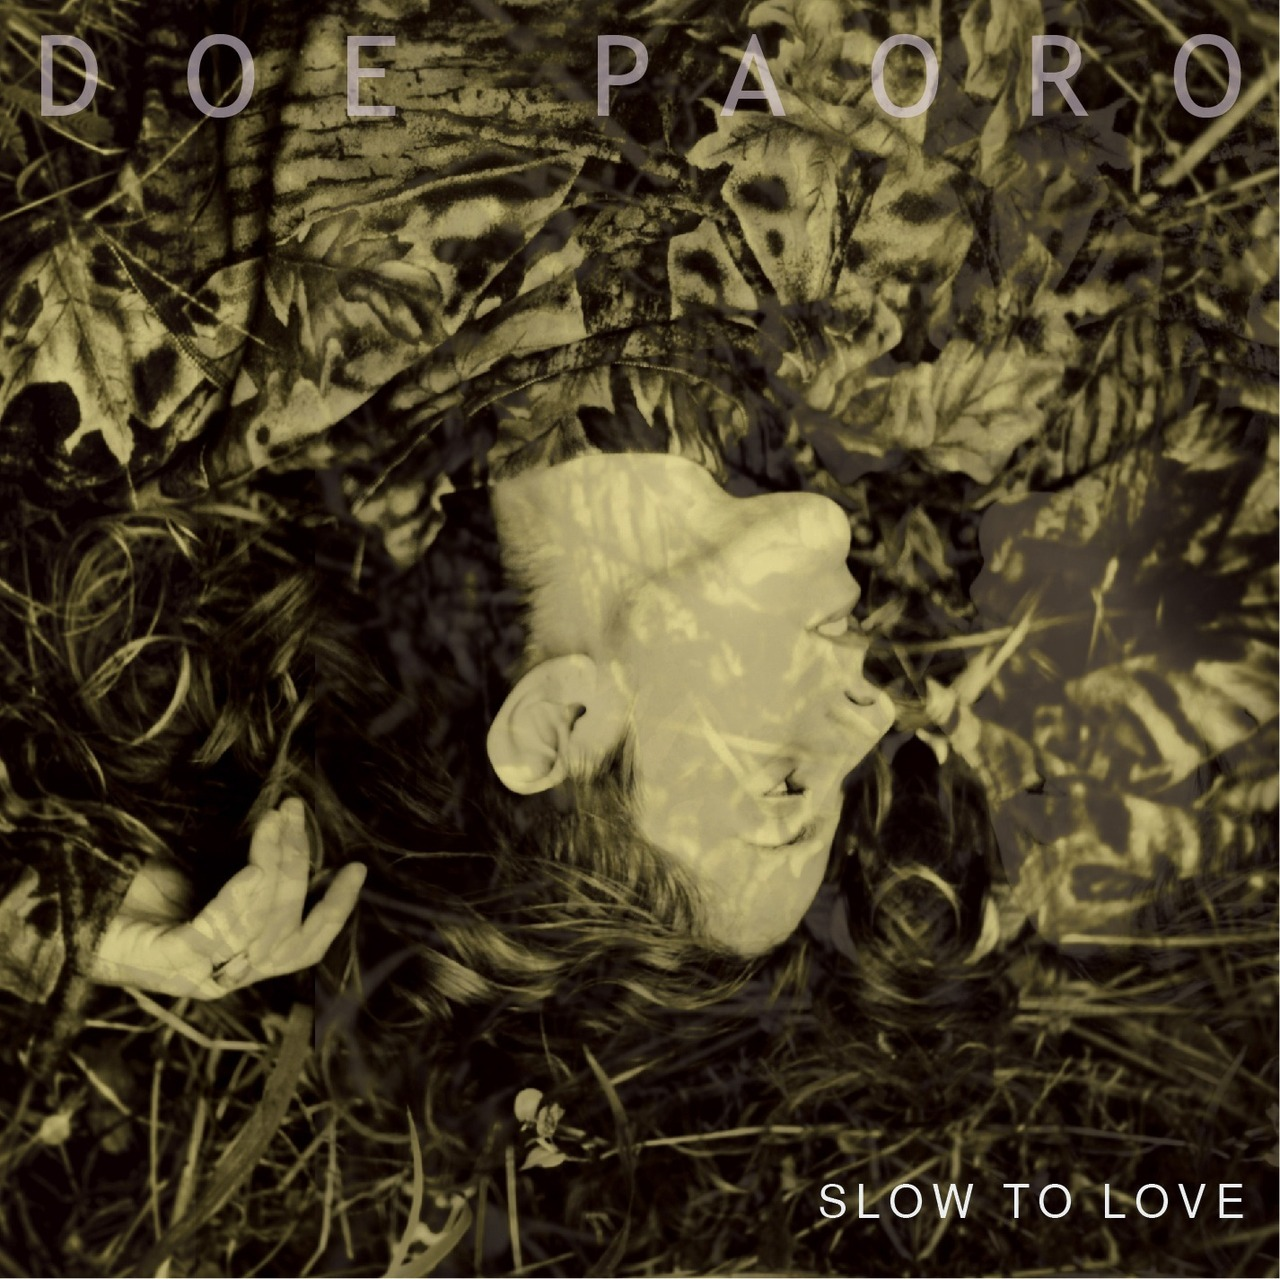 "Brooklyn-based artist Doe Paoro describes her music as ""Ghost Soul,"" characterized by a dolorous, ethereal sound that evokes the resurrection of ""a choir of ghosts who haven't completely detached from the human experience.""Her newest release Slow To Love was largely inspired by her solo journey through the Himalayas this past year. The haunting vocals encountered throughout are strongly influenced by her in-depth study of Lhamo—a powerful, unusual and vocally acrobatic Tibetan-style opera.  Paoro has been compared to Adele, Lykke Li and James Blake, but her haunting vocals and spacious arrangements are singular, realized in a state of sorrow without bitterness, passion without pretense.    Have a listen to our favorite tracks below:  Born WholeCan't Leave YouBody Games Listen to the full album here.  Paoro will be headlining our upcoming showcase this Wednesday at Pianos. Tickets are $8. Grab them below!  Buy Tickets"